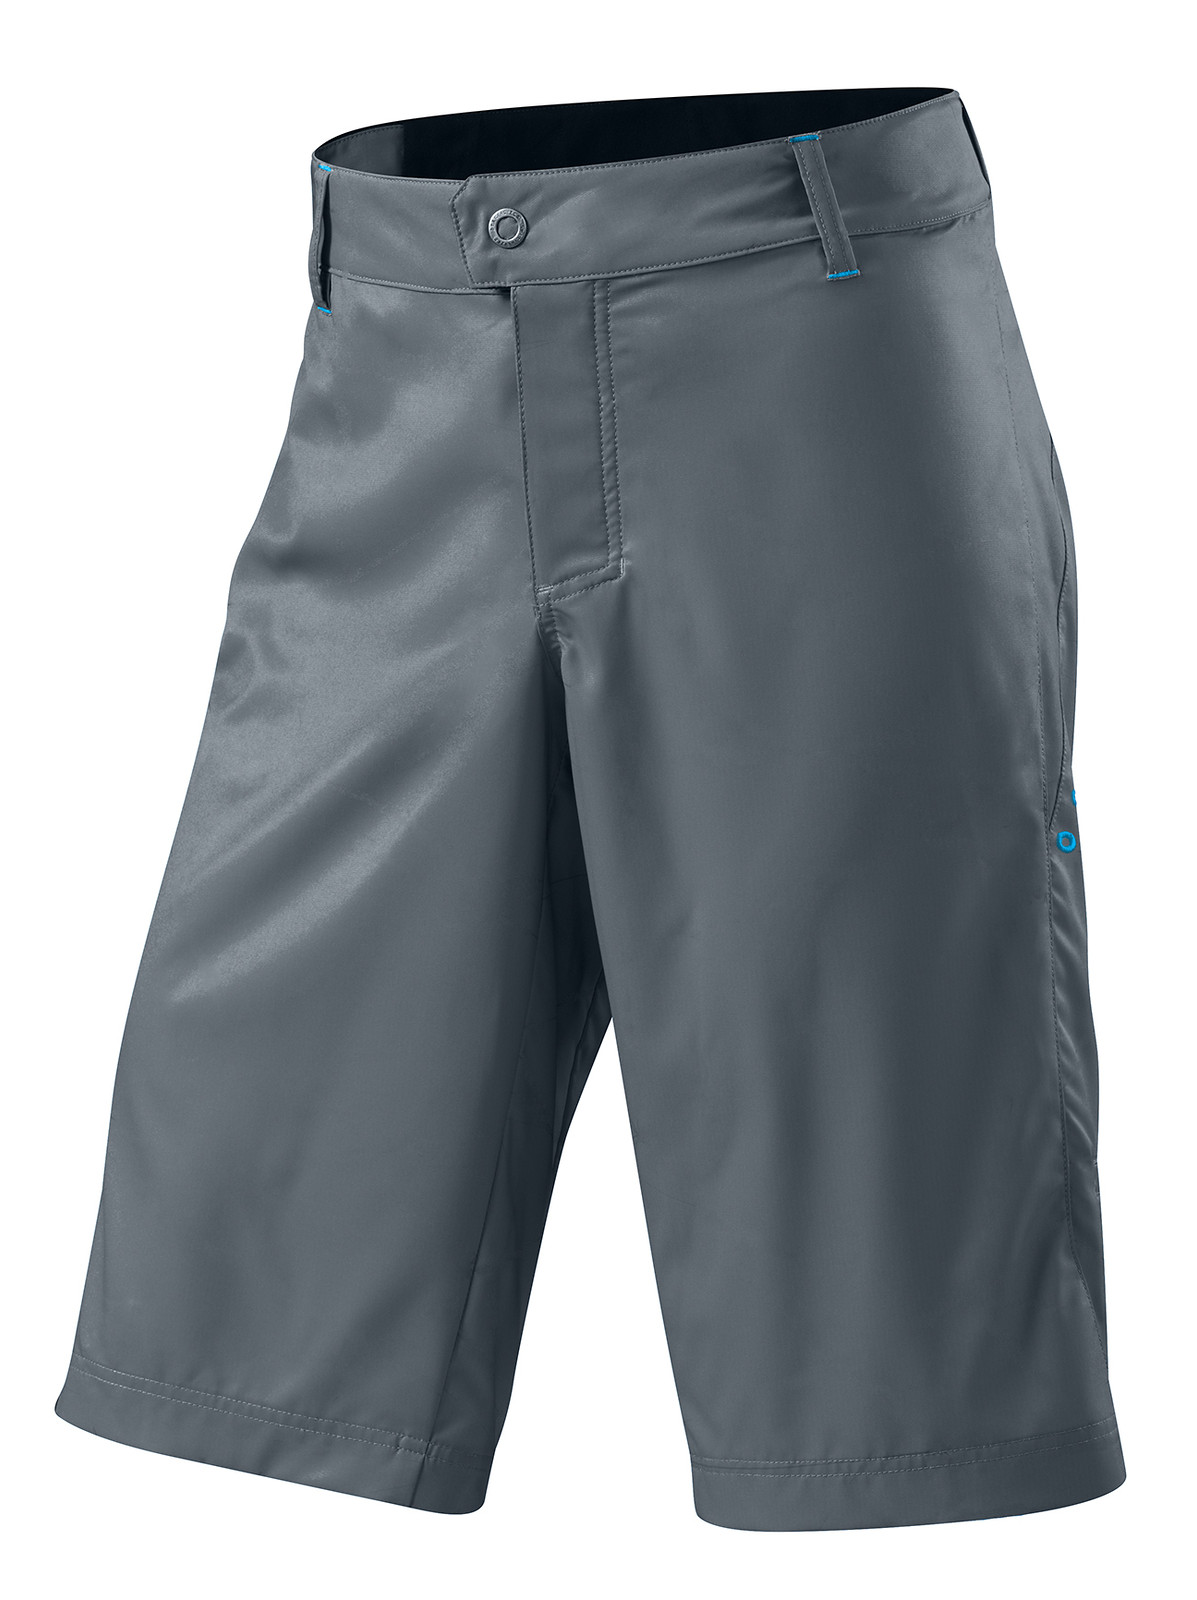 Specialized RBX Comp bib shorts – in brief review ...